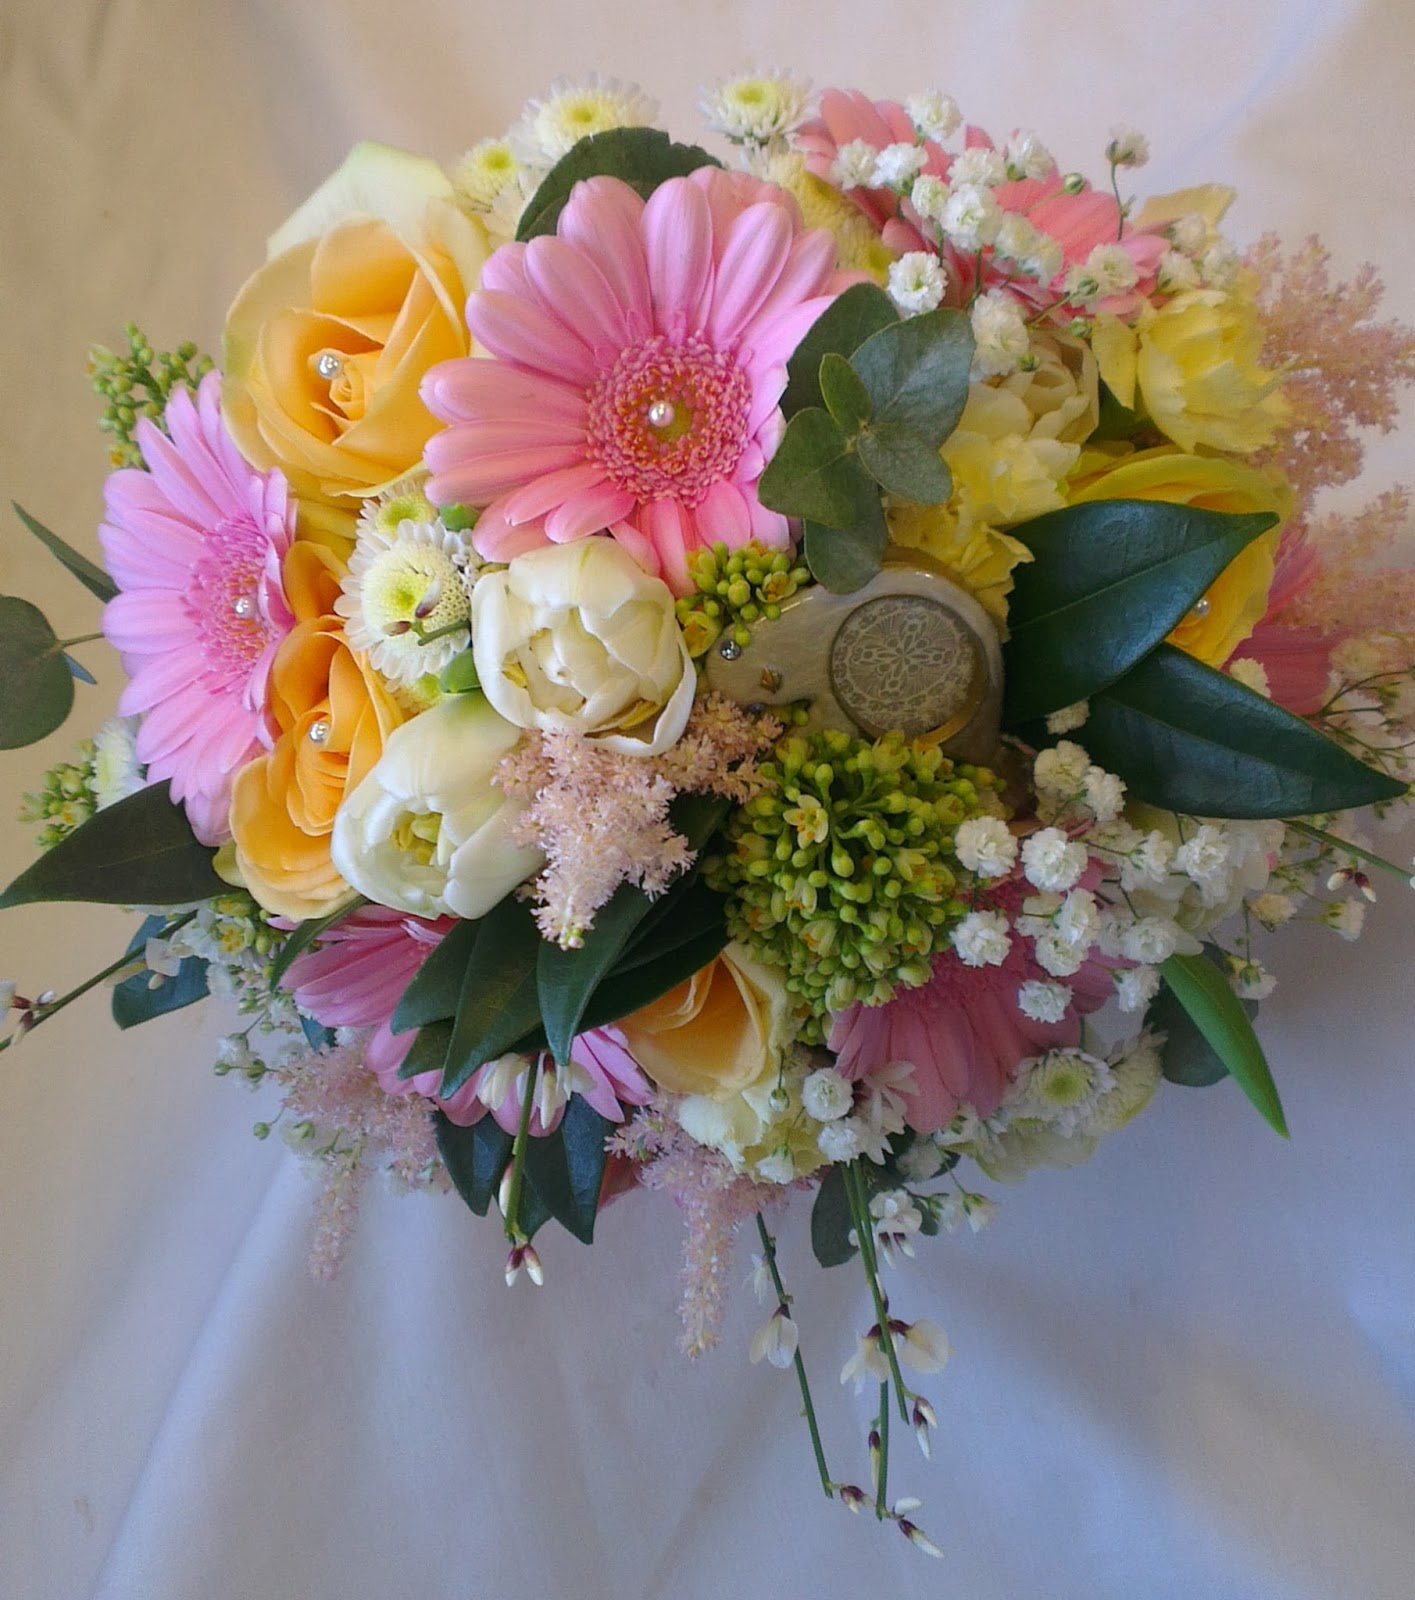 Coral And Pink Wedding Flowers: Sandra's Flower Studio: Pink, Ivory And Coral Wedding Flowers